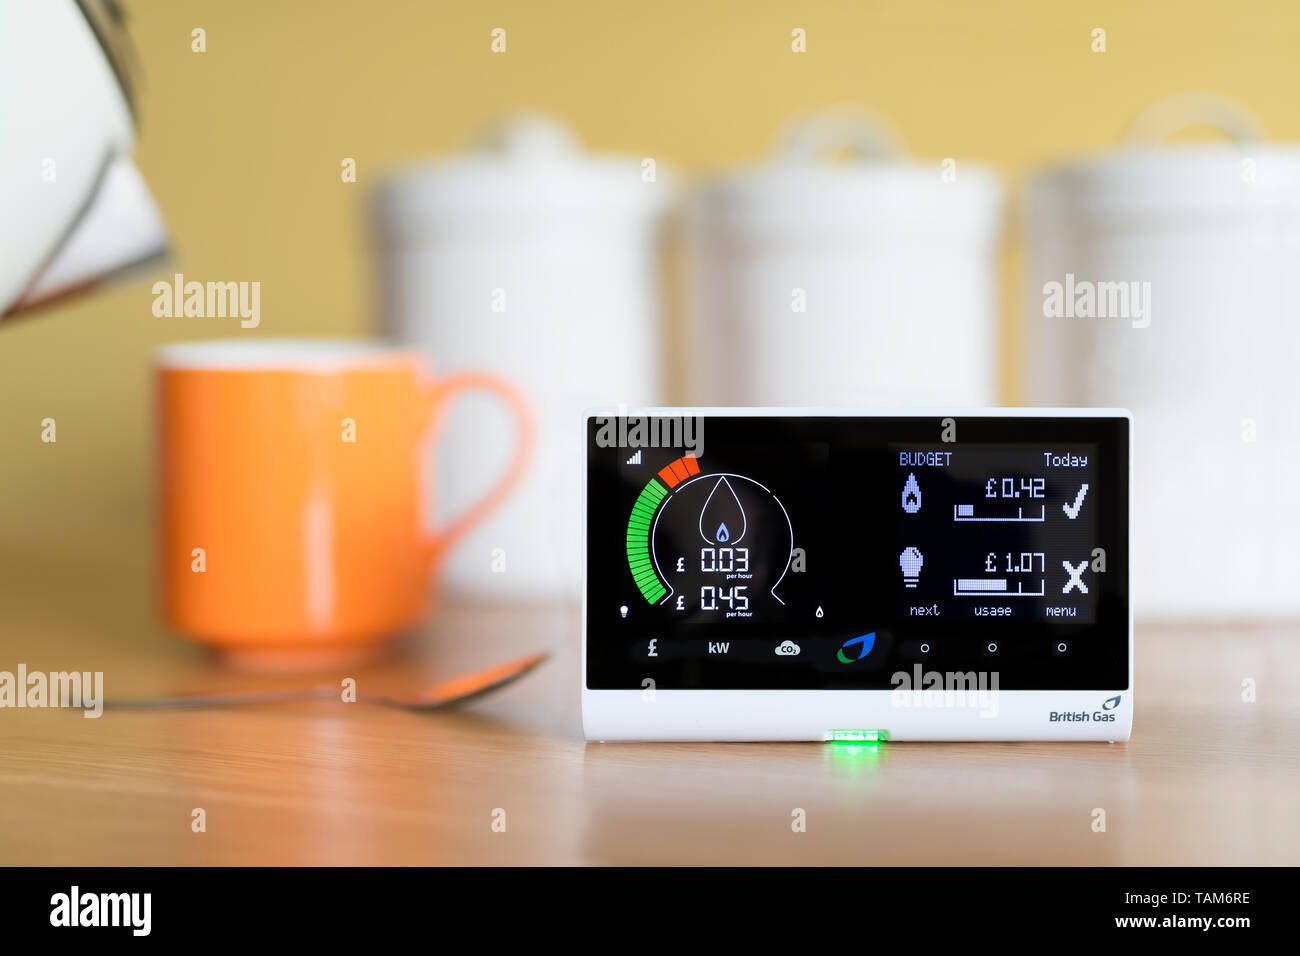 A domestic use British Gas energy smart meter displaying the cost of gas electricity usage in a UK home, placed in a kitchen environment. - Stock Image